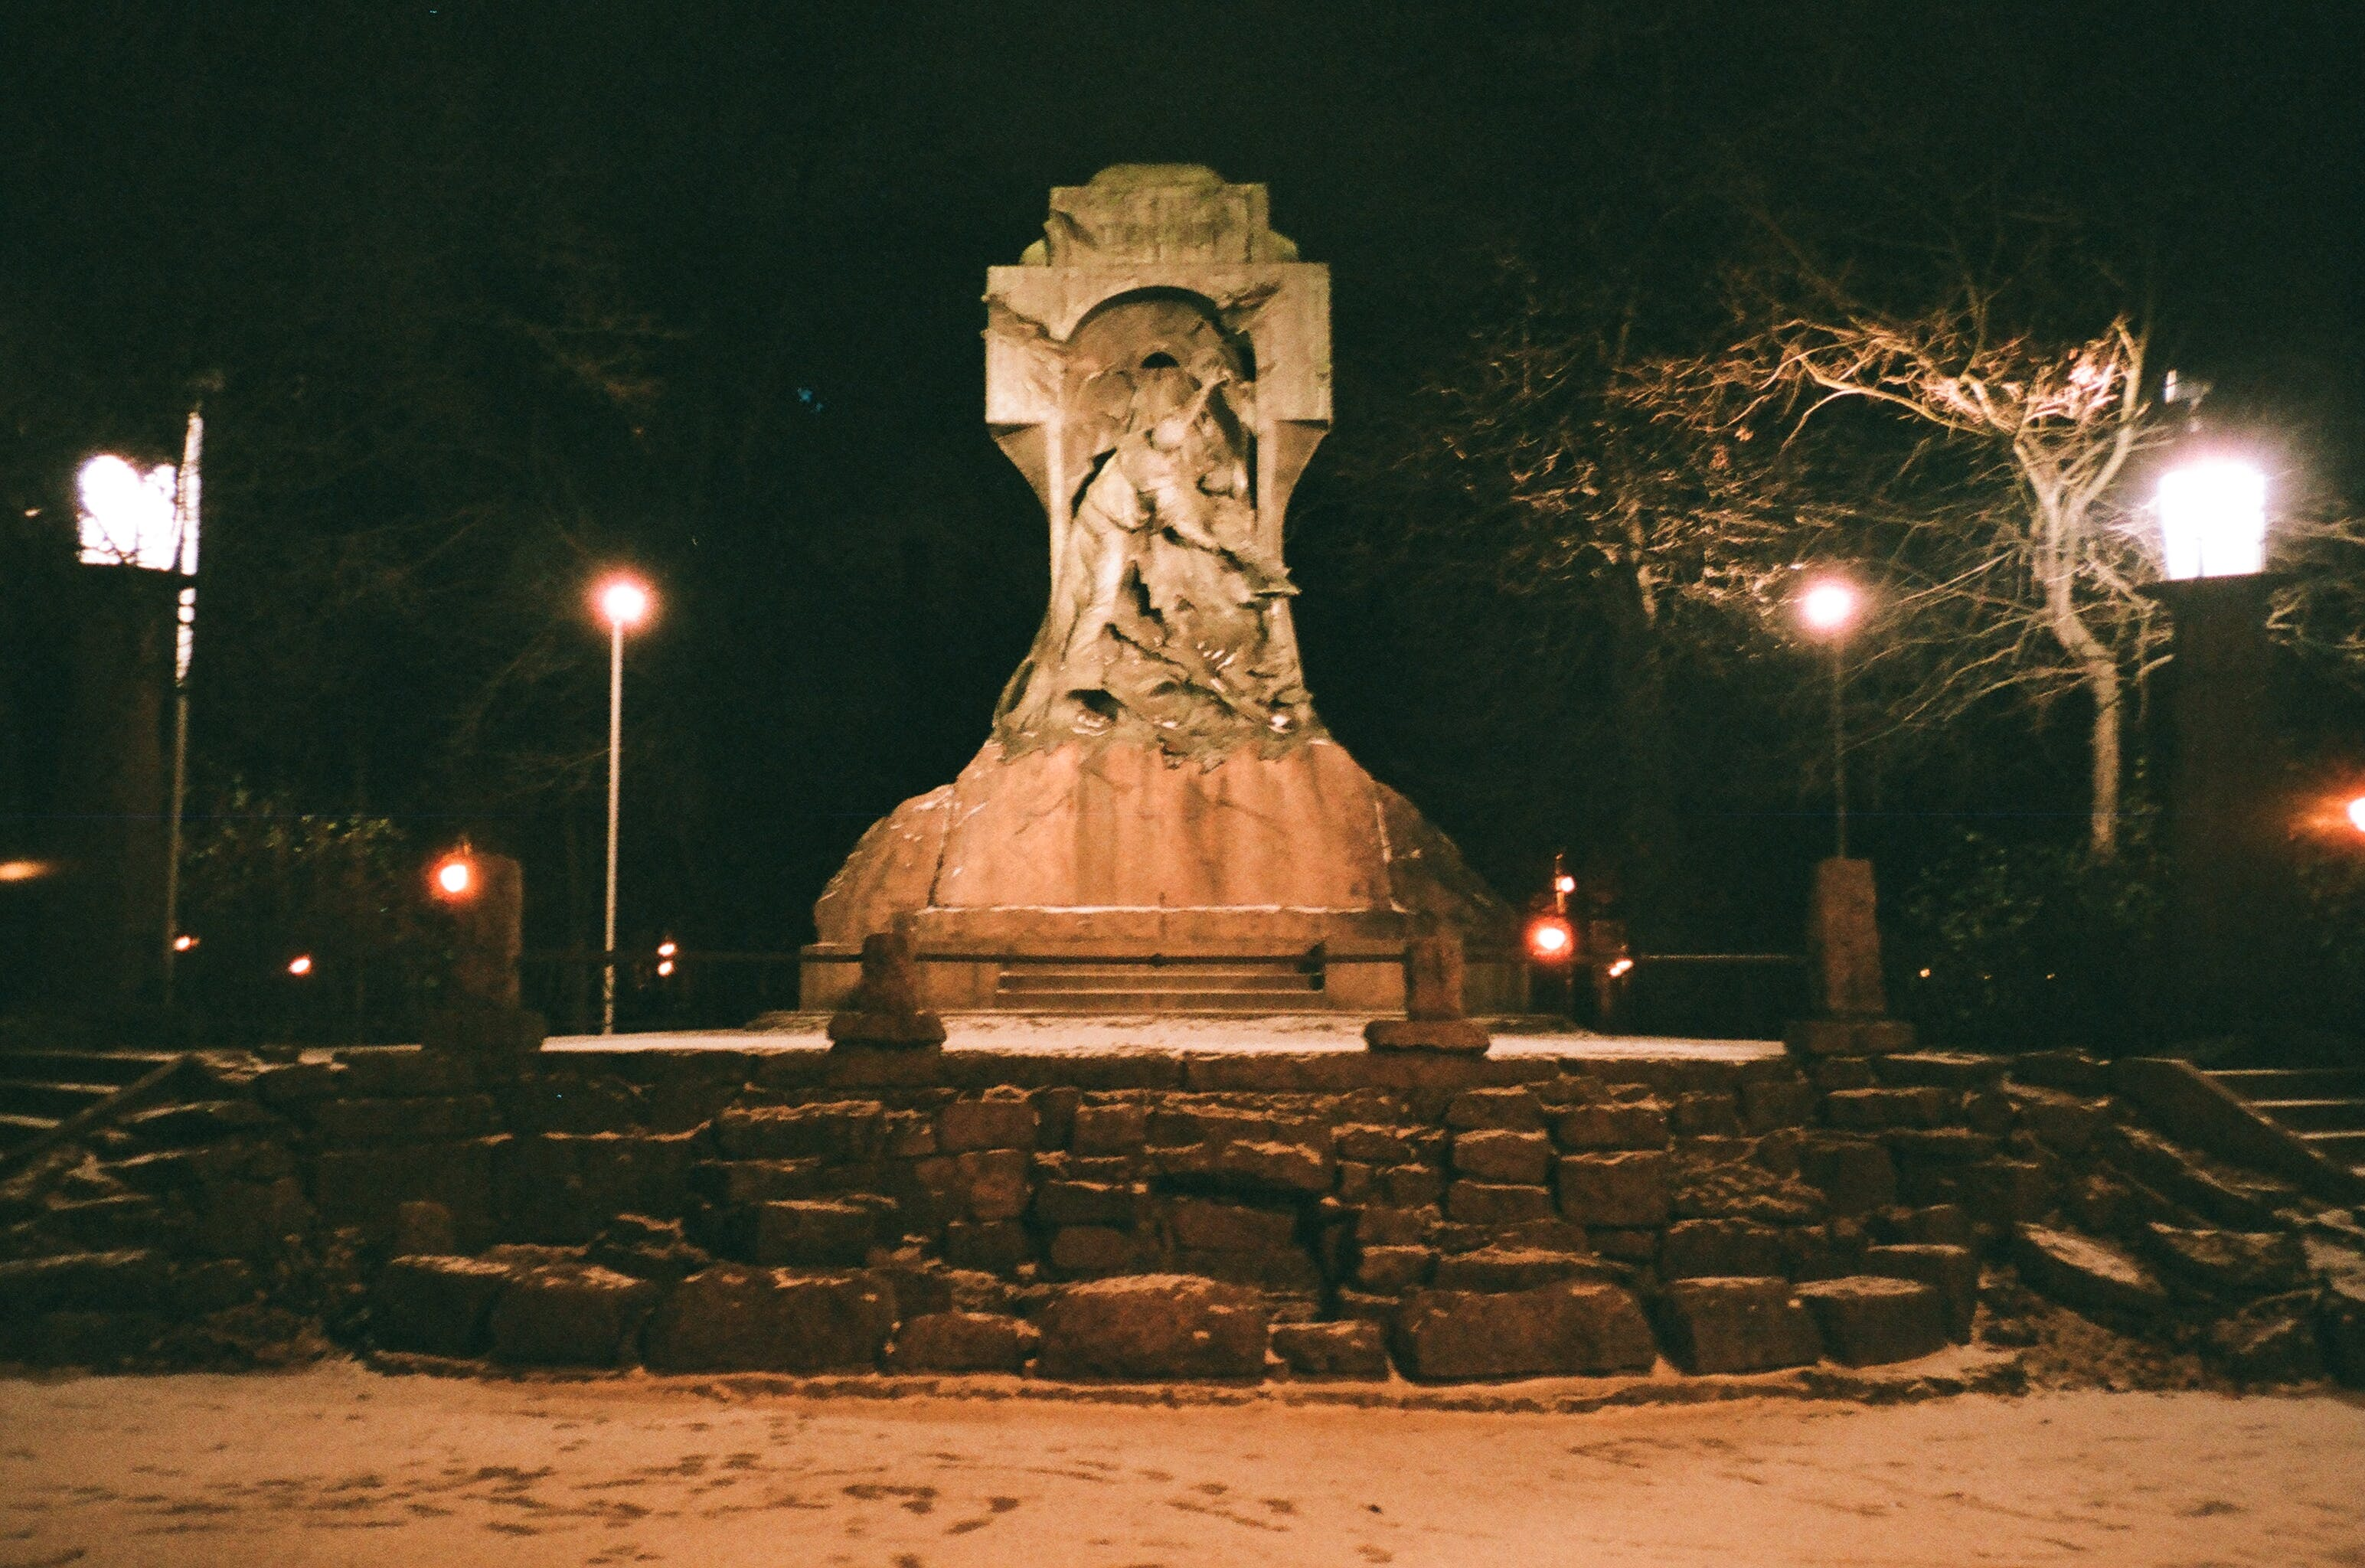 Lighted Concrete Statue during Night Time